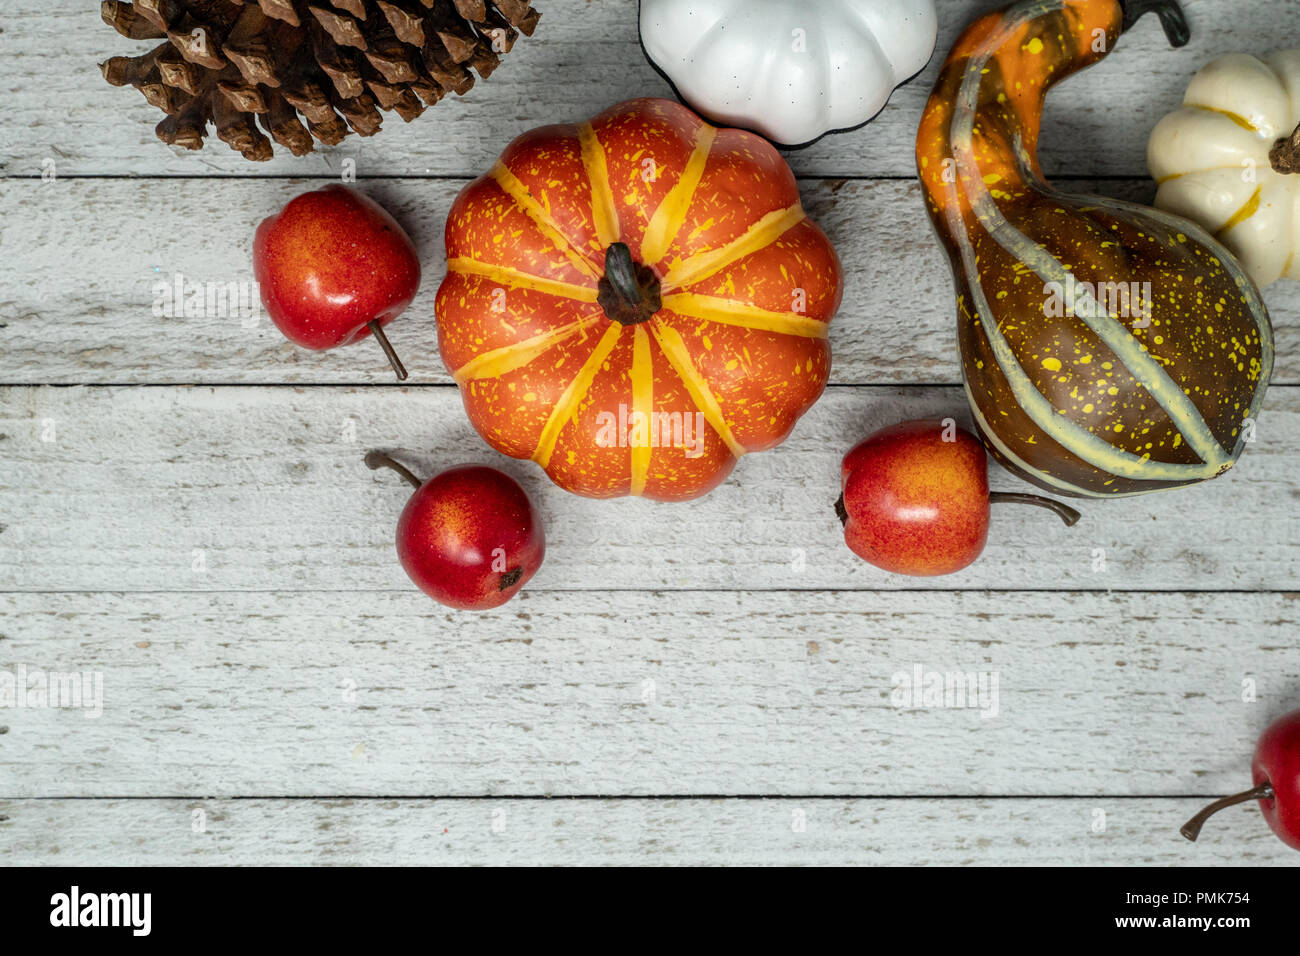 fall scene with various pumpkins and gourds apples squash wooden